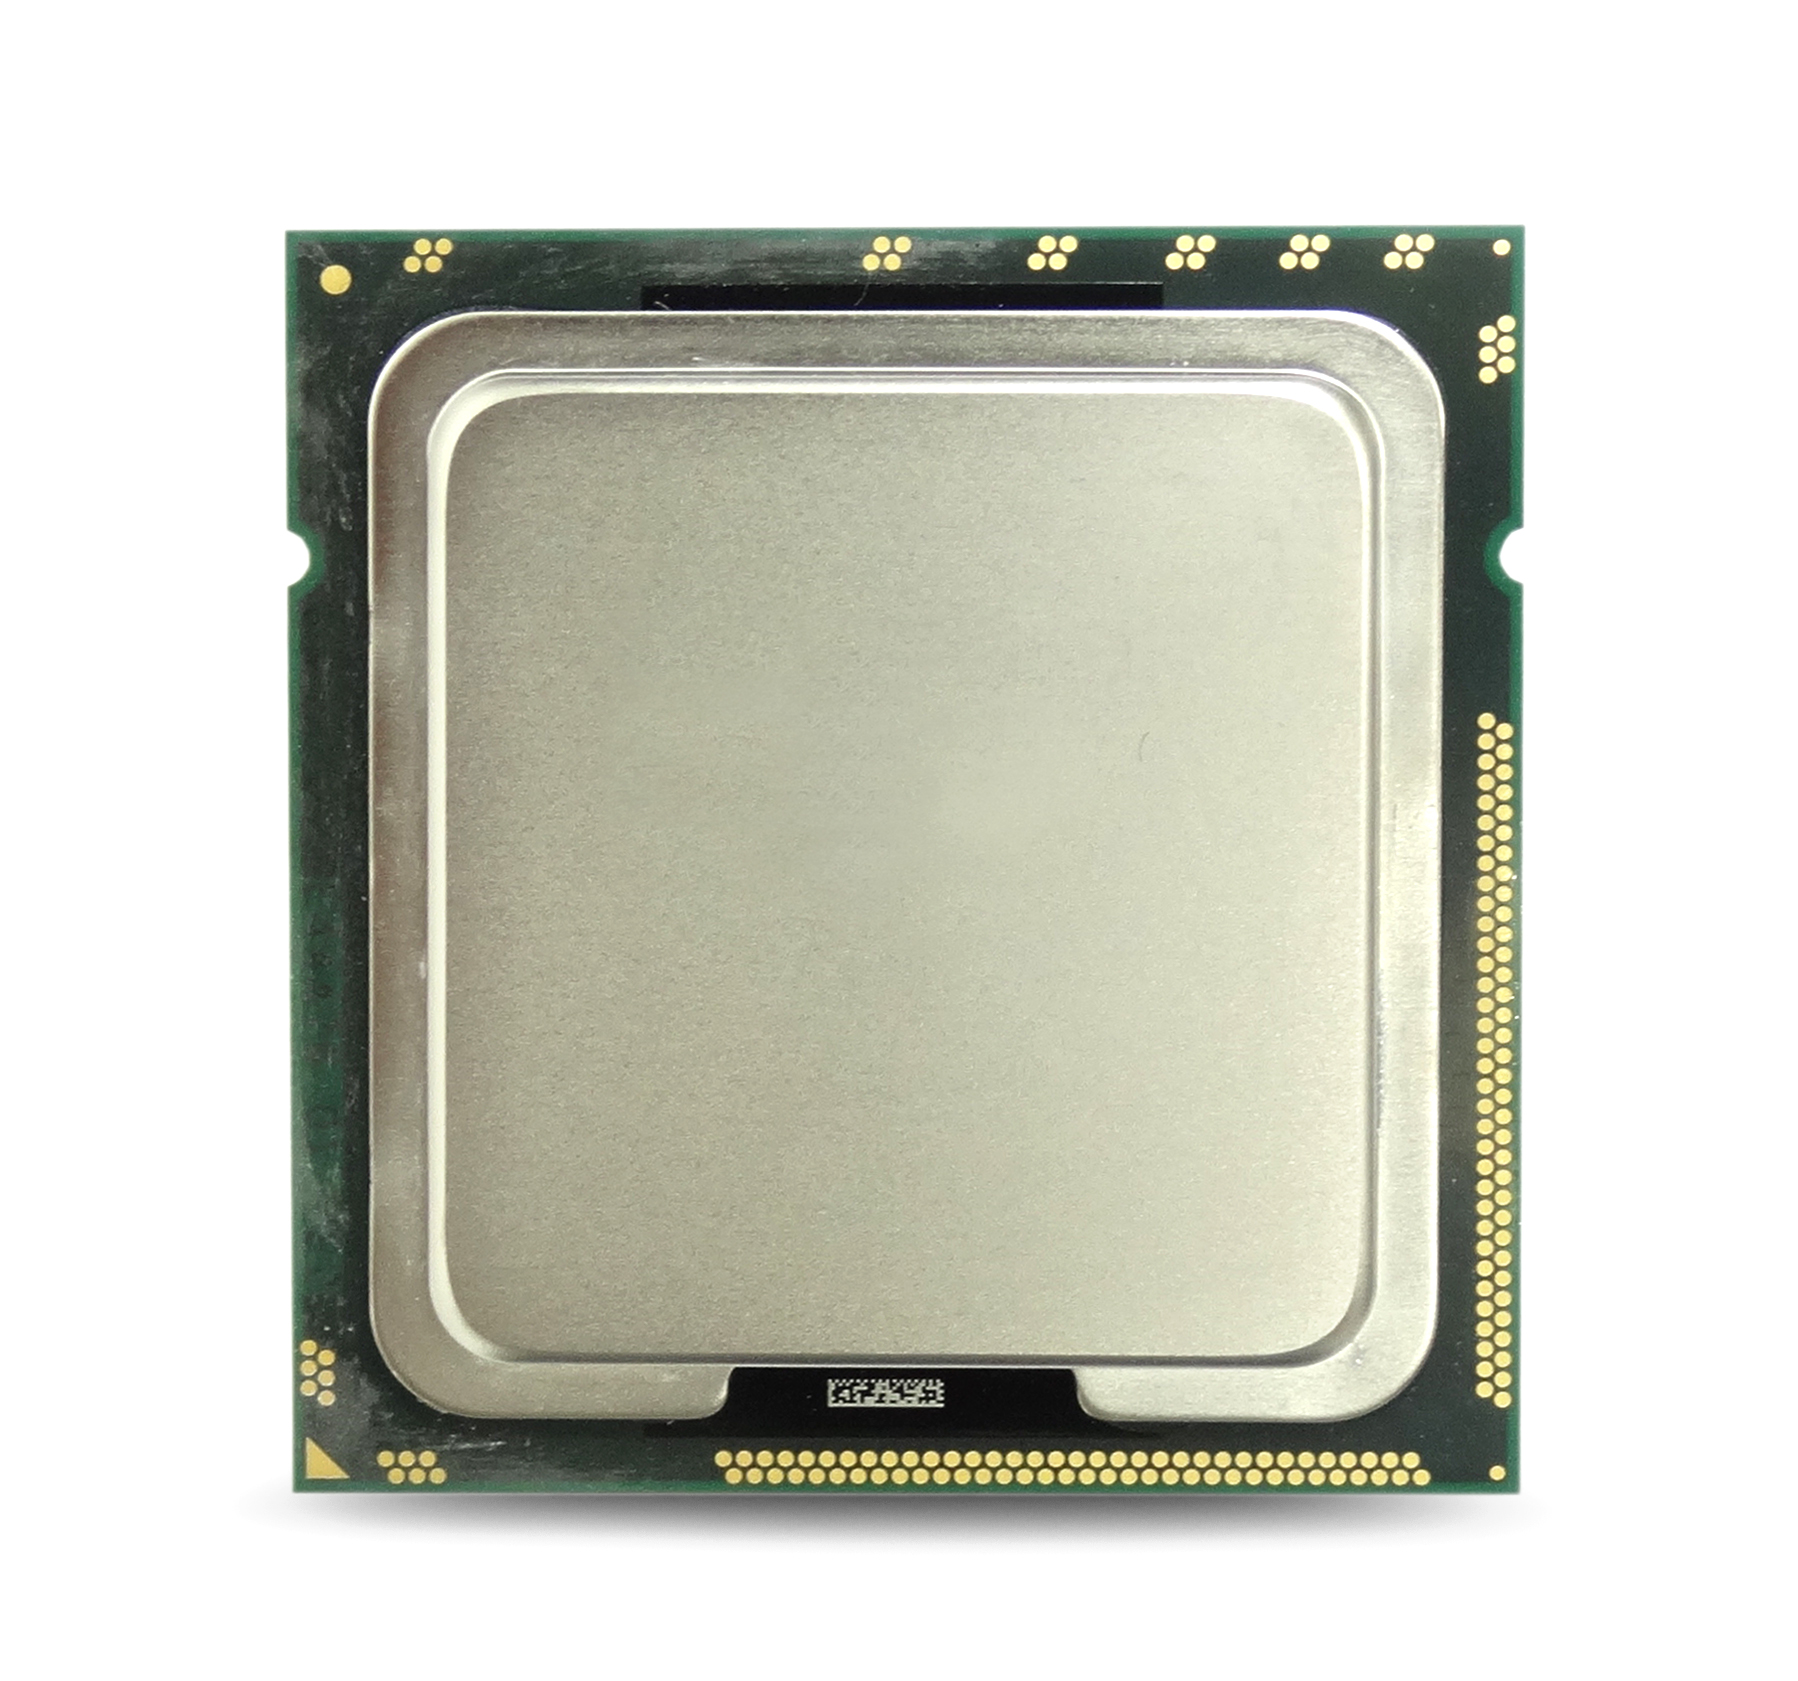 Intel Core 2 Duo E6320 1.86 GHz 4MB Processor (SLA4U)